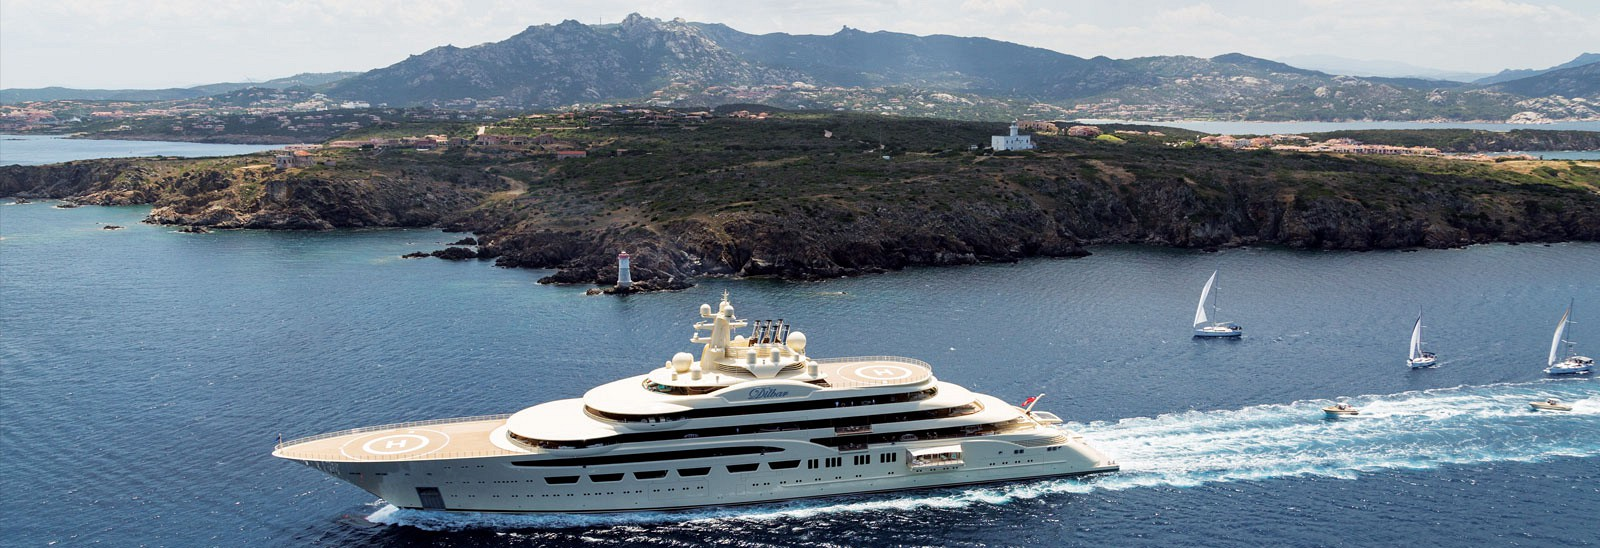 Winners at the World Superyacht Awards 2017